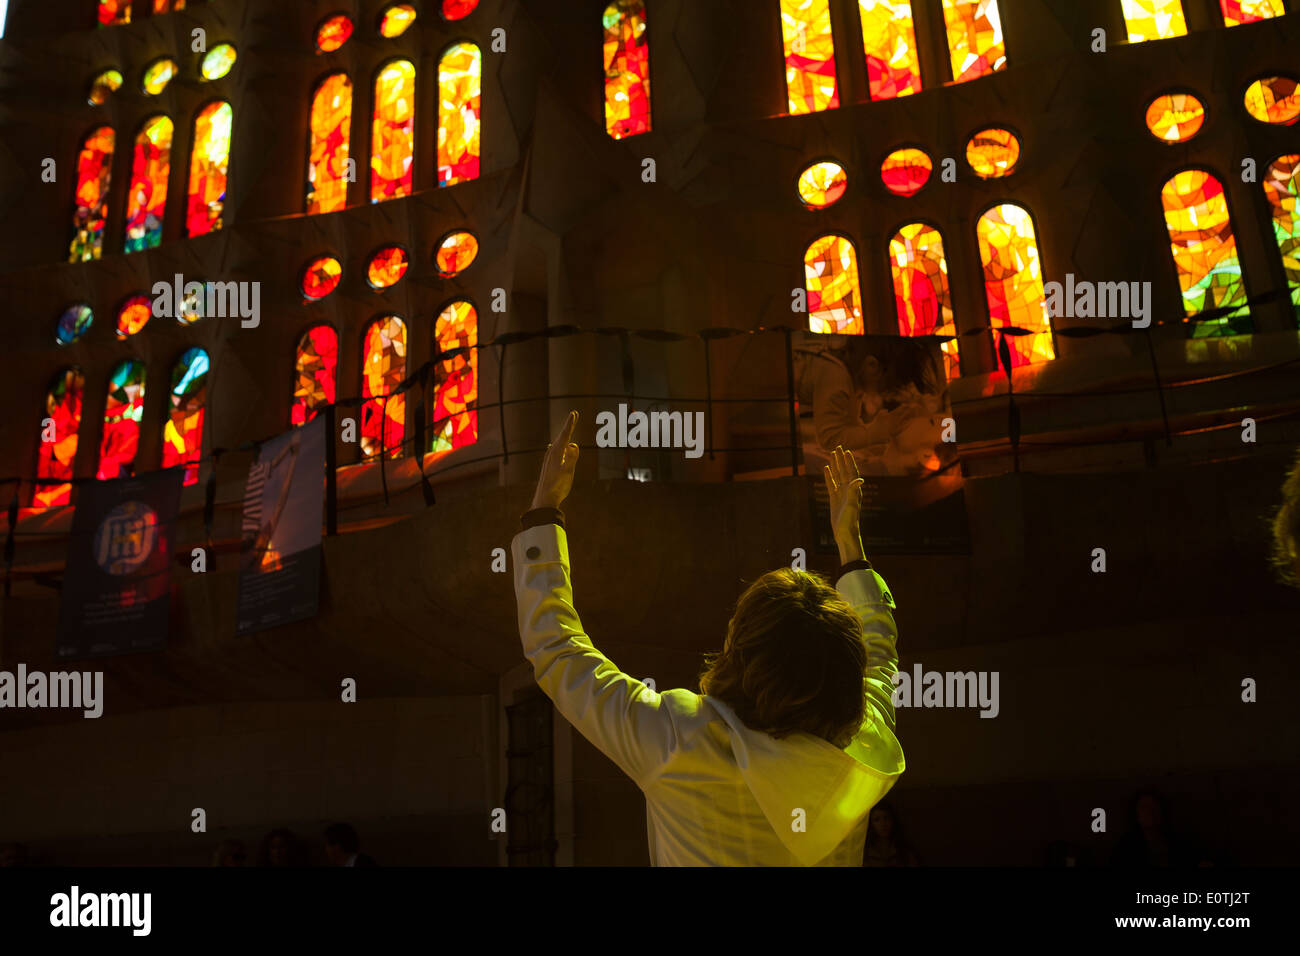 Woman with her hands on the air praying in the Sagrada familia, Barcelona - Stock Image